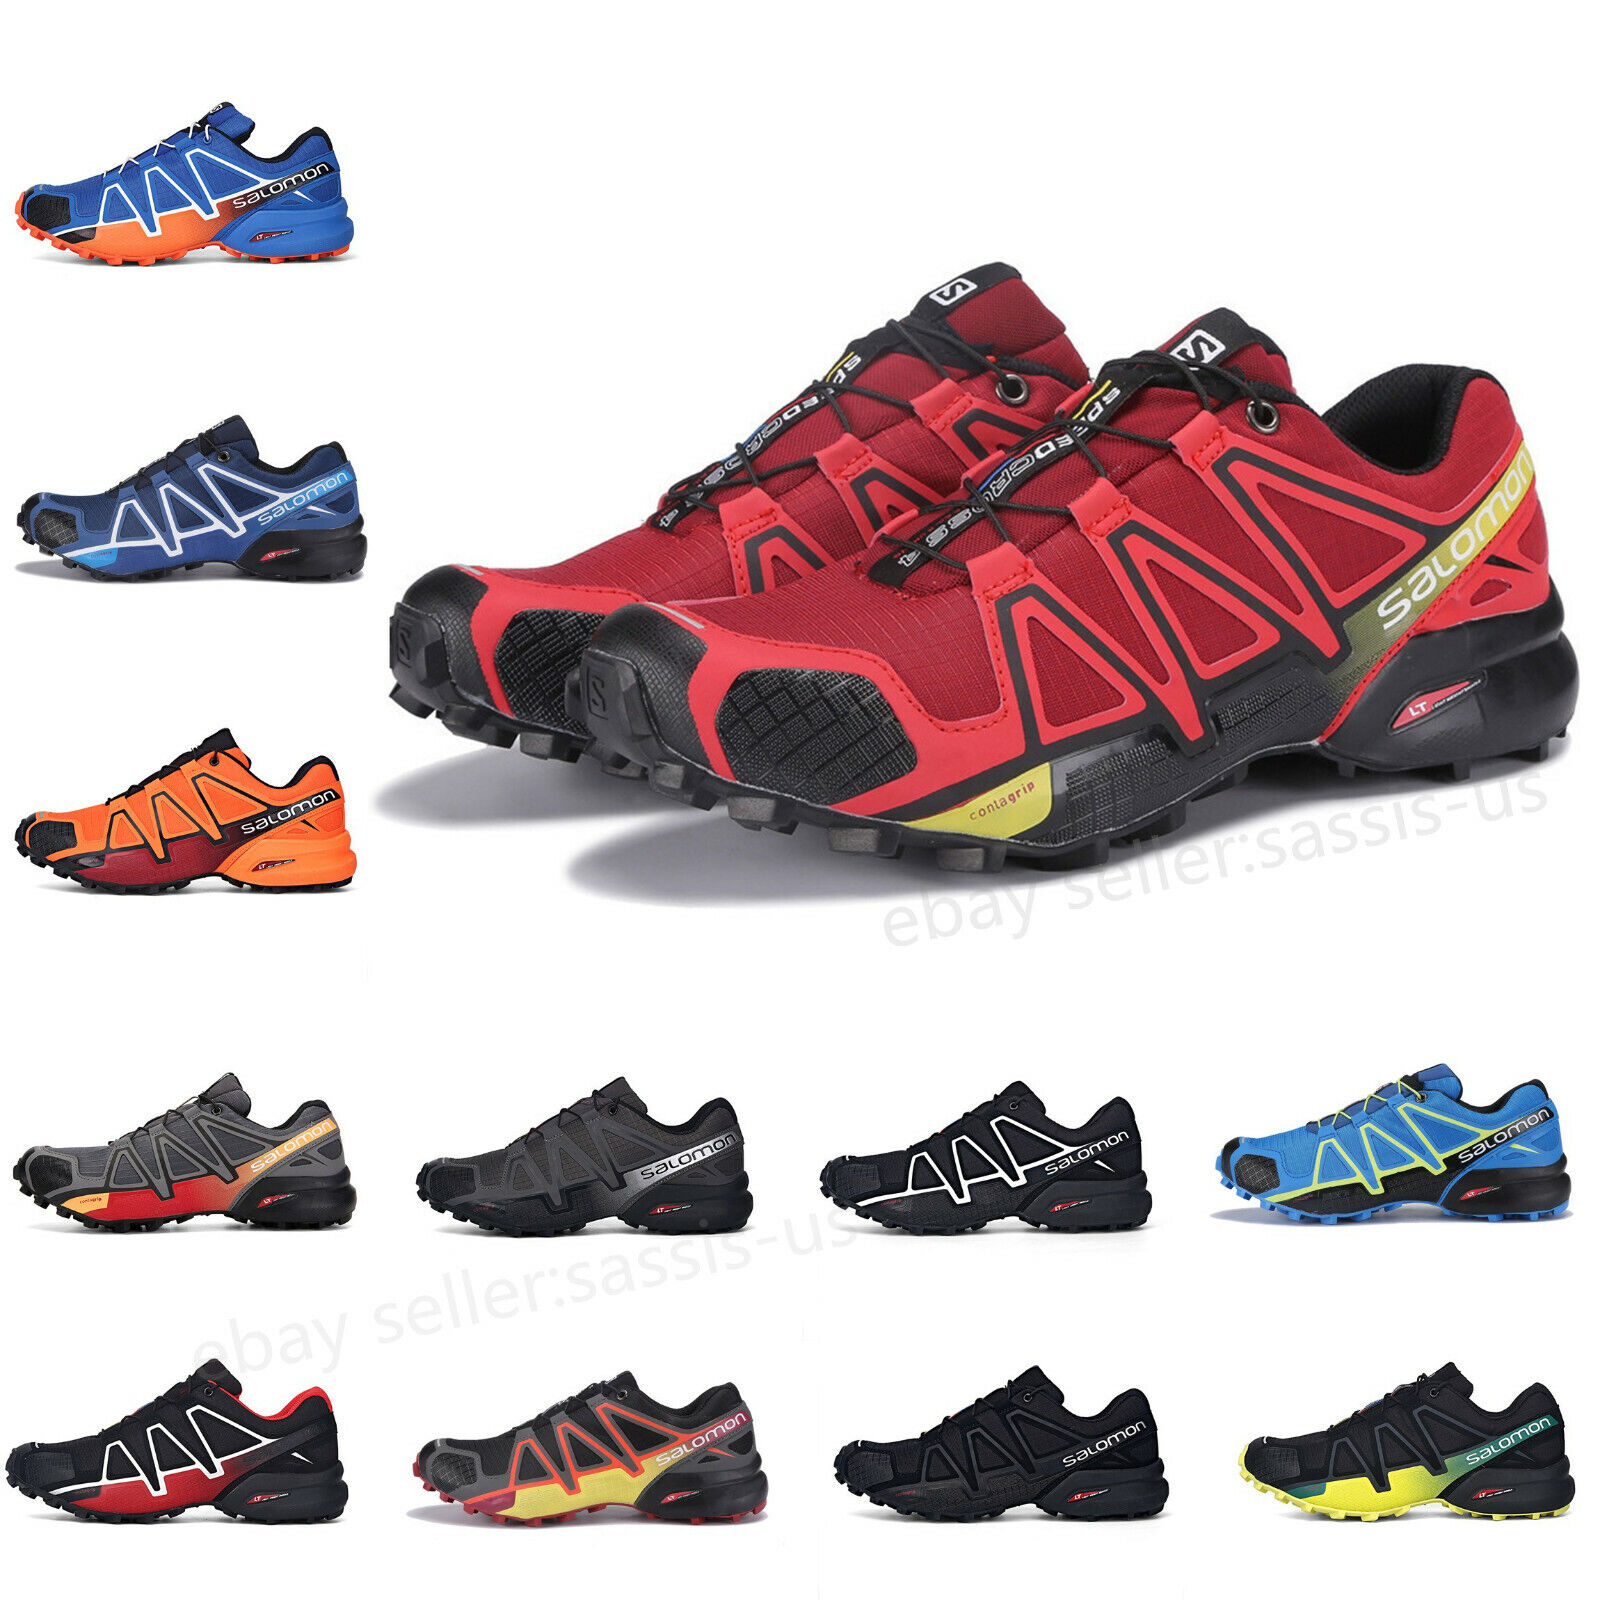 Details about Uomo Salomon Speedcross 3 Sneakers Outdoor Running escursione Scarpe sportive